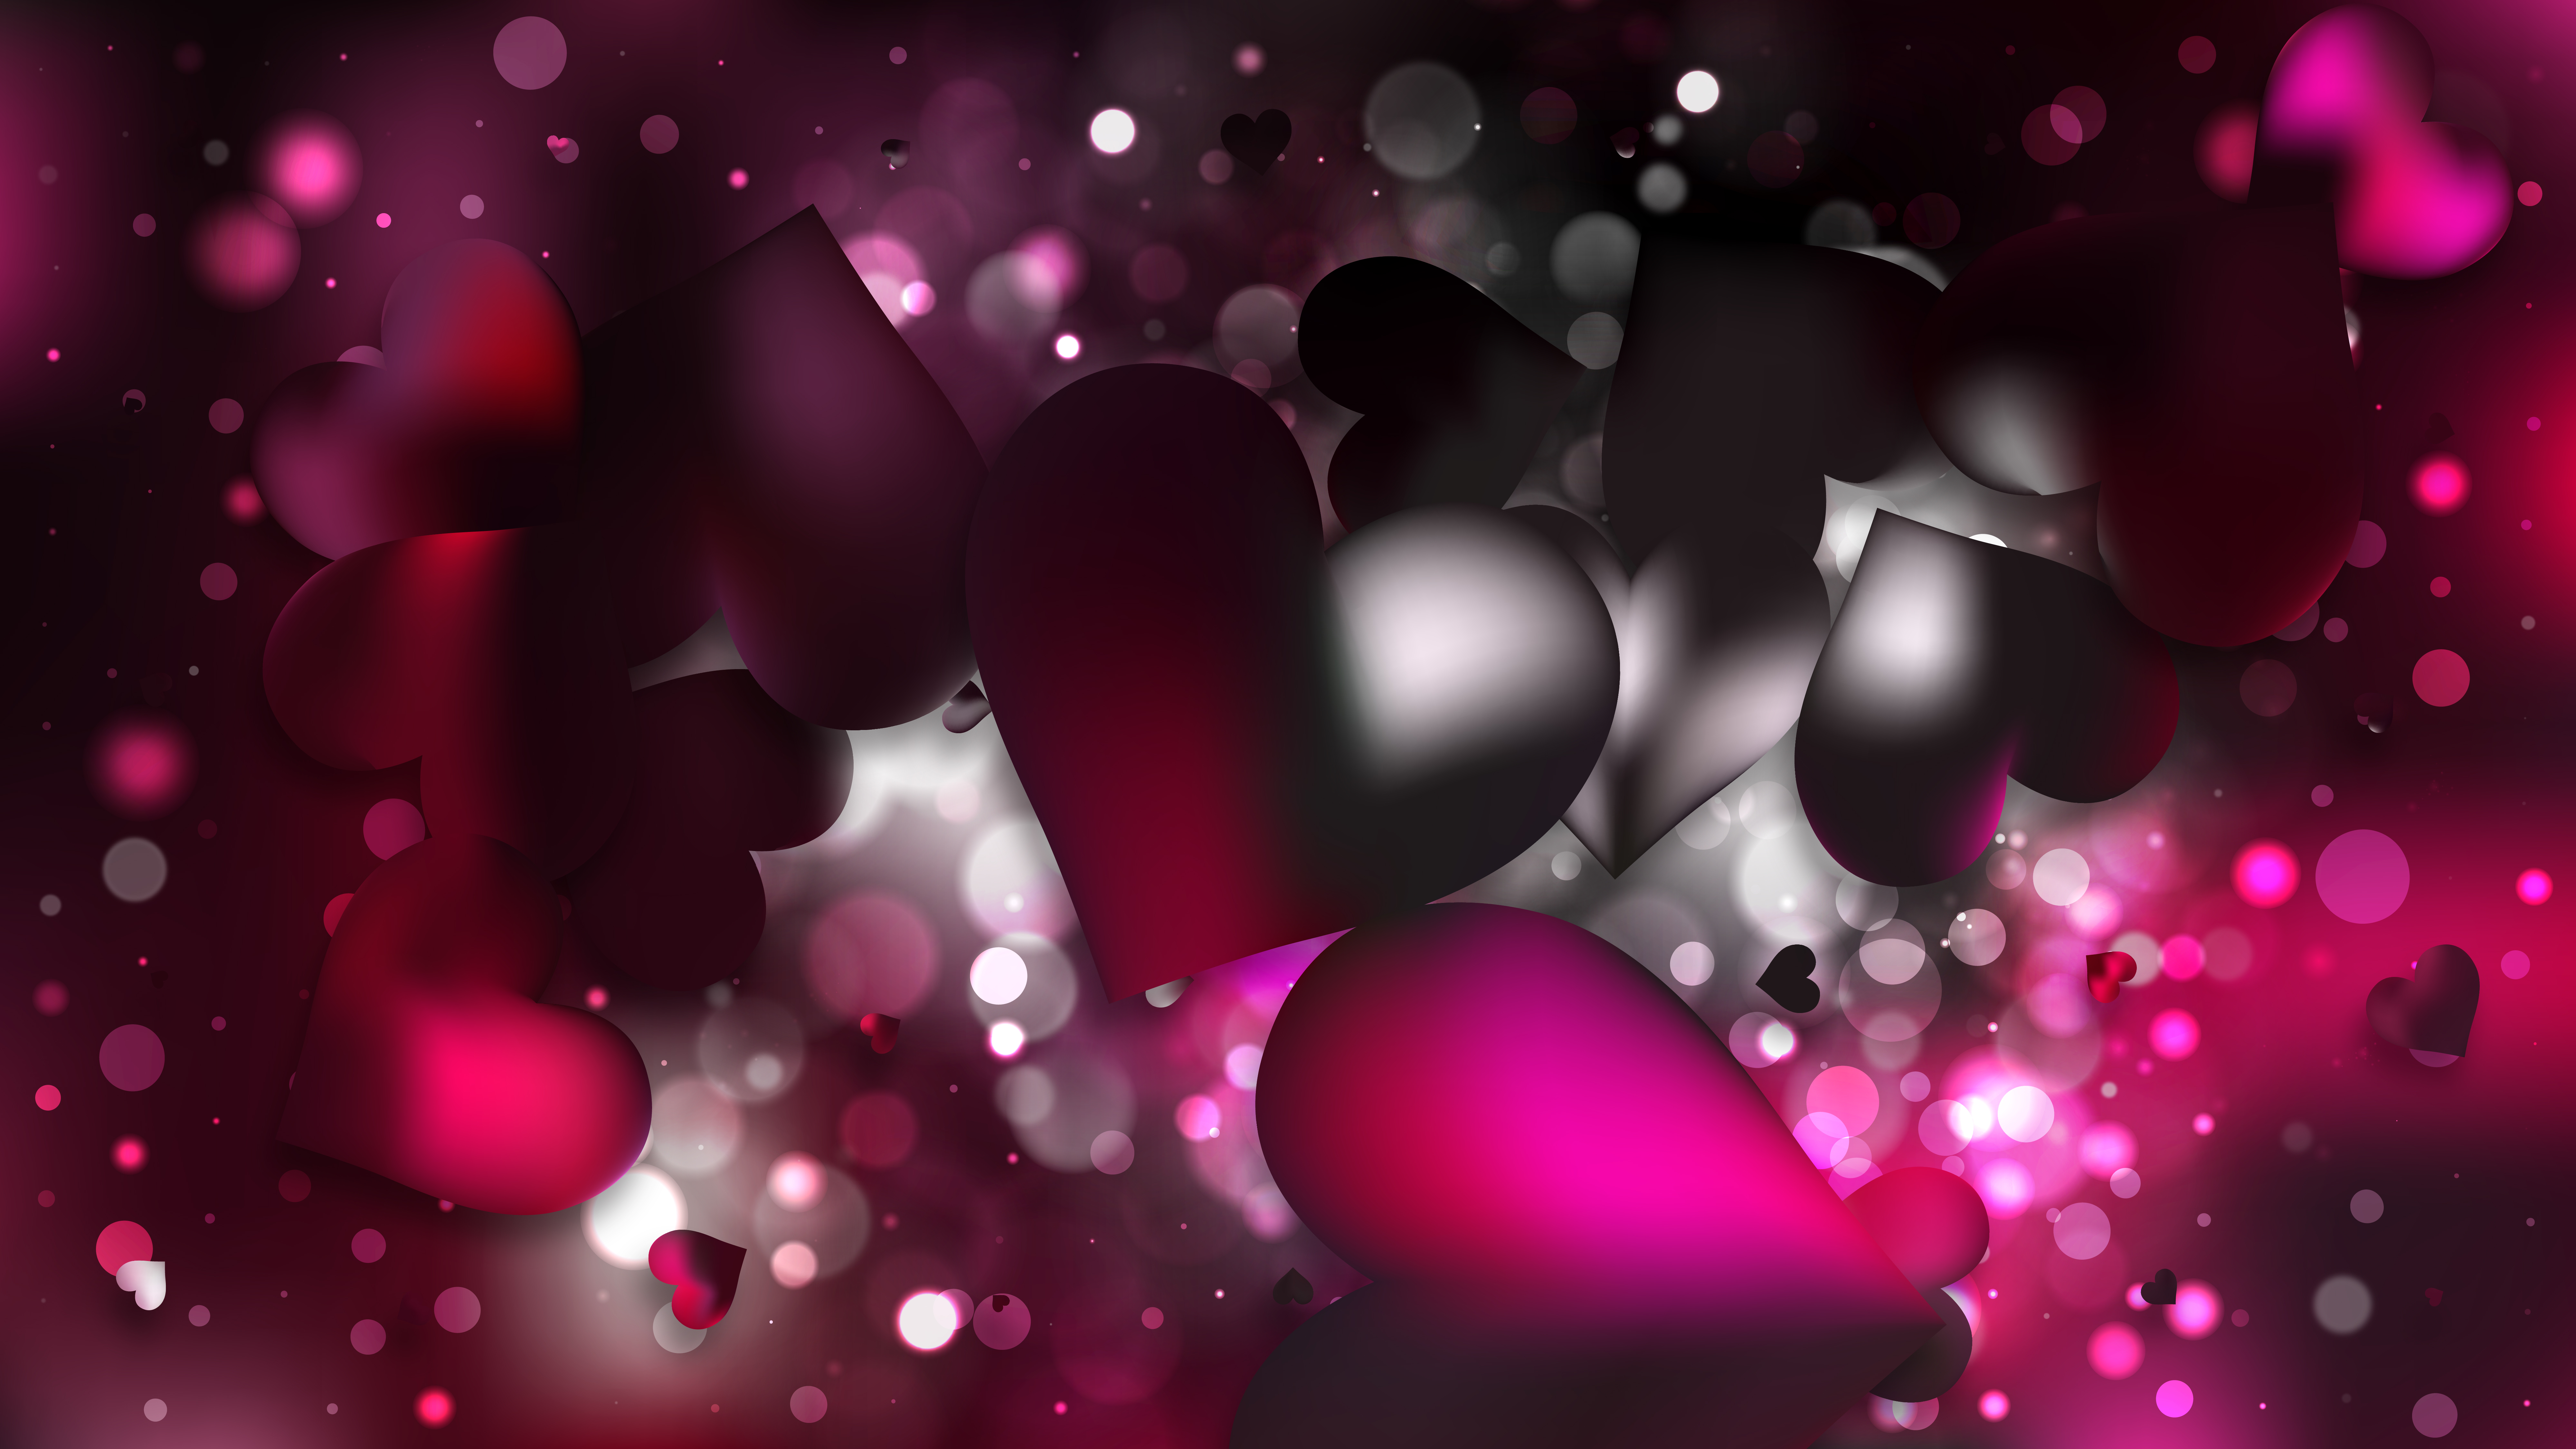 Pink And Black Hearts Wallpaper Posted By Michelle Mercado